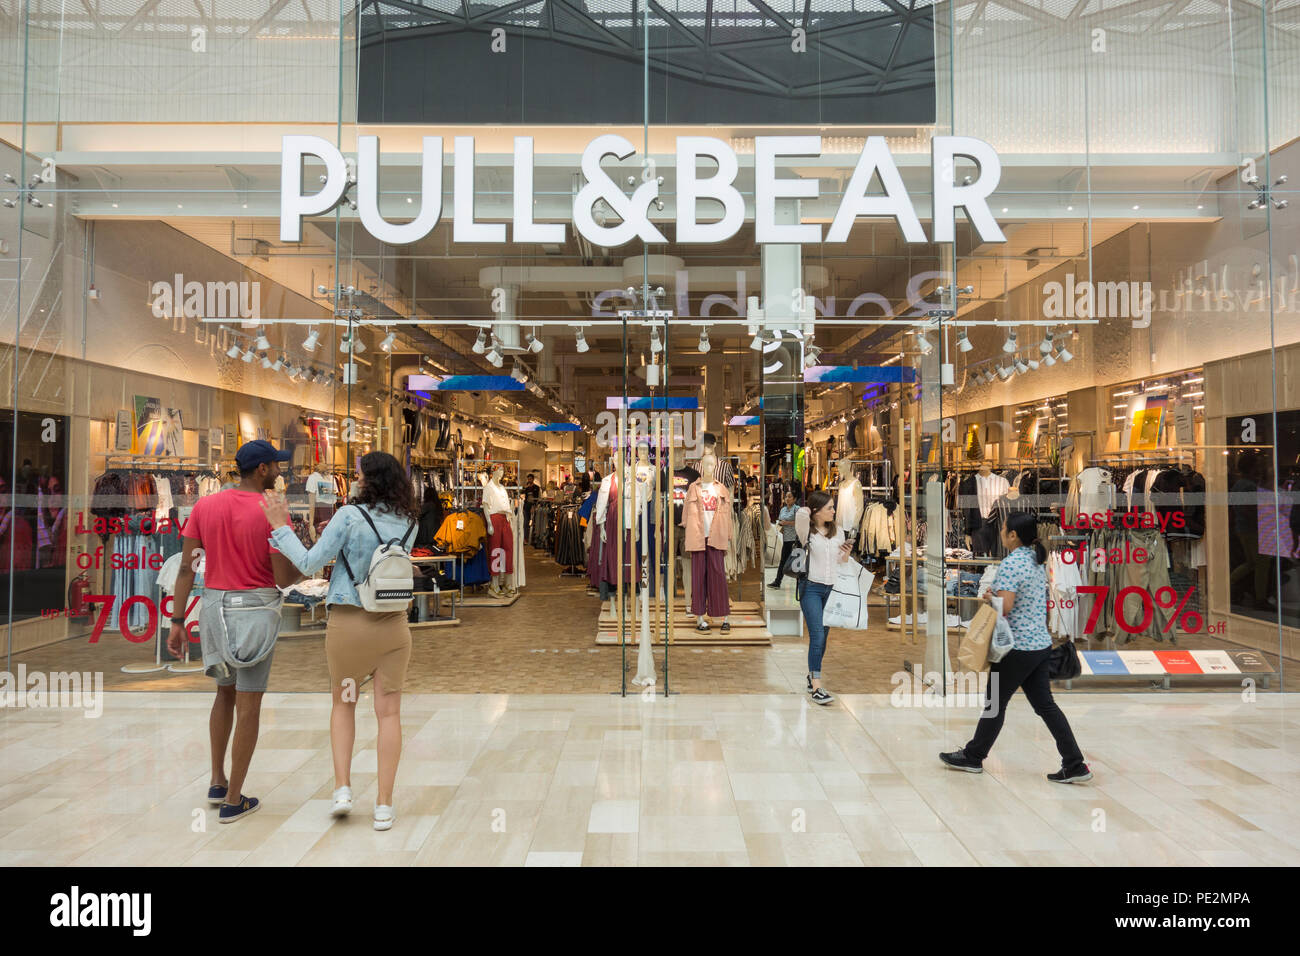 0b29bea12a4 Pull bear Stock Photos   Pull bear Stock Images - Alamy